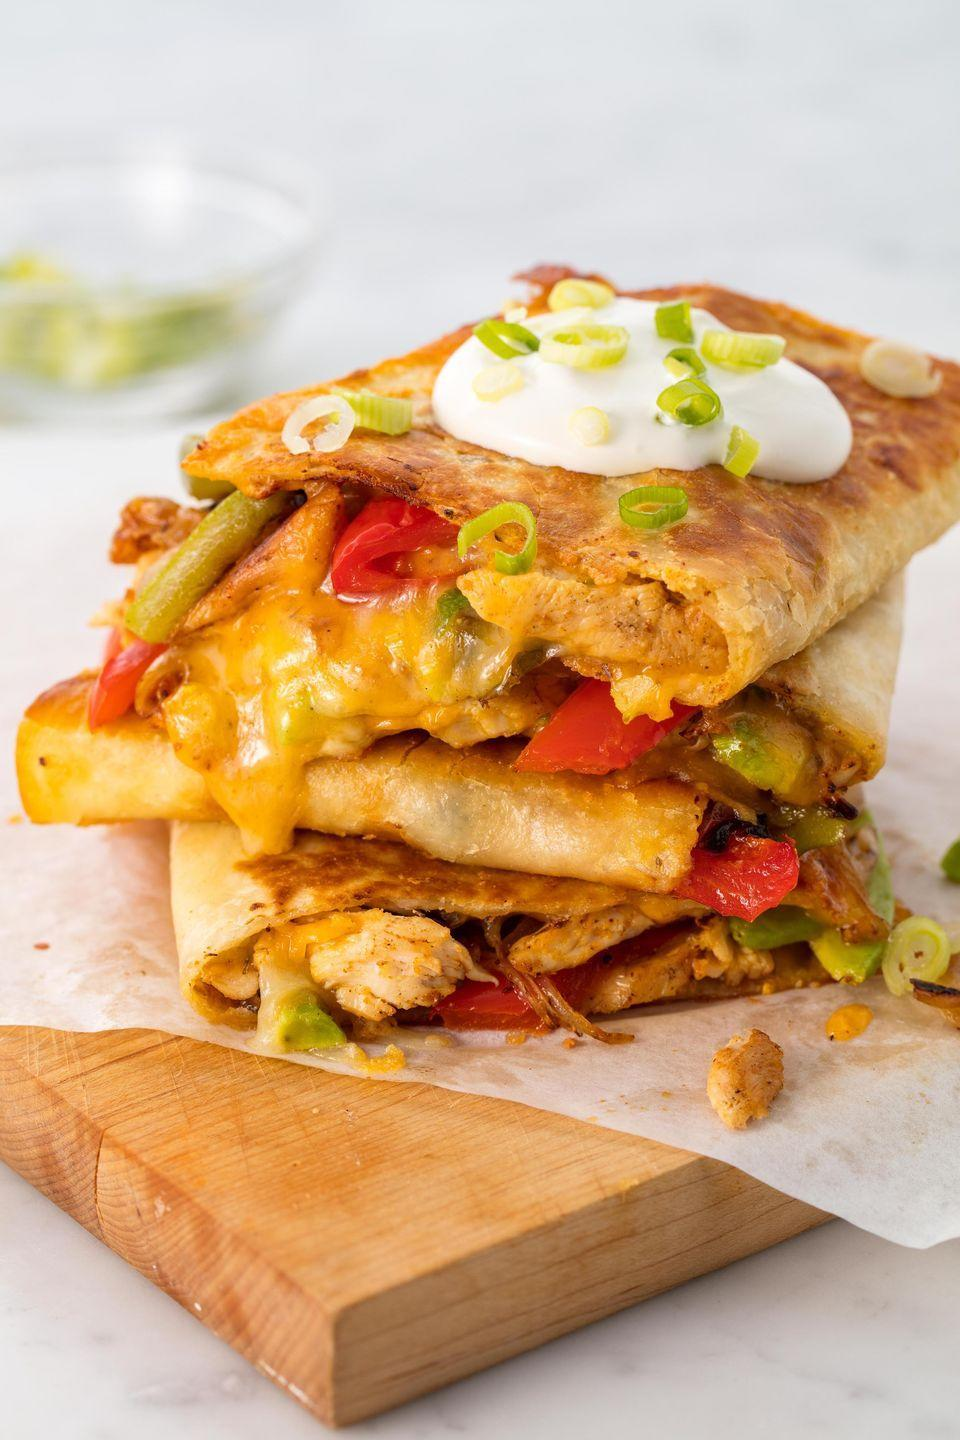 """<p>Start your weekend fiesta right.</p><p>Get the recipe from <a href=""""https://www.delish.com/cooking/recipe-ideas/recipes/a54465/easy-chicken-quesadilla-recipe/"""" rel=""""nofollow noopener"""" target=""""_blank"""" data-ylk=""""slk:Delish"""" class=""""link rapid-noclick-resp"""">Delish</a>. </p>"""